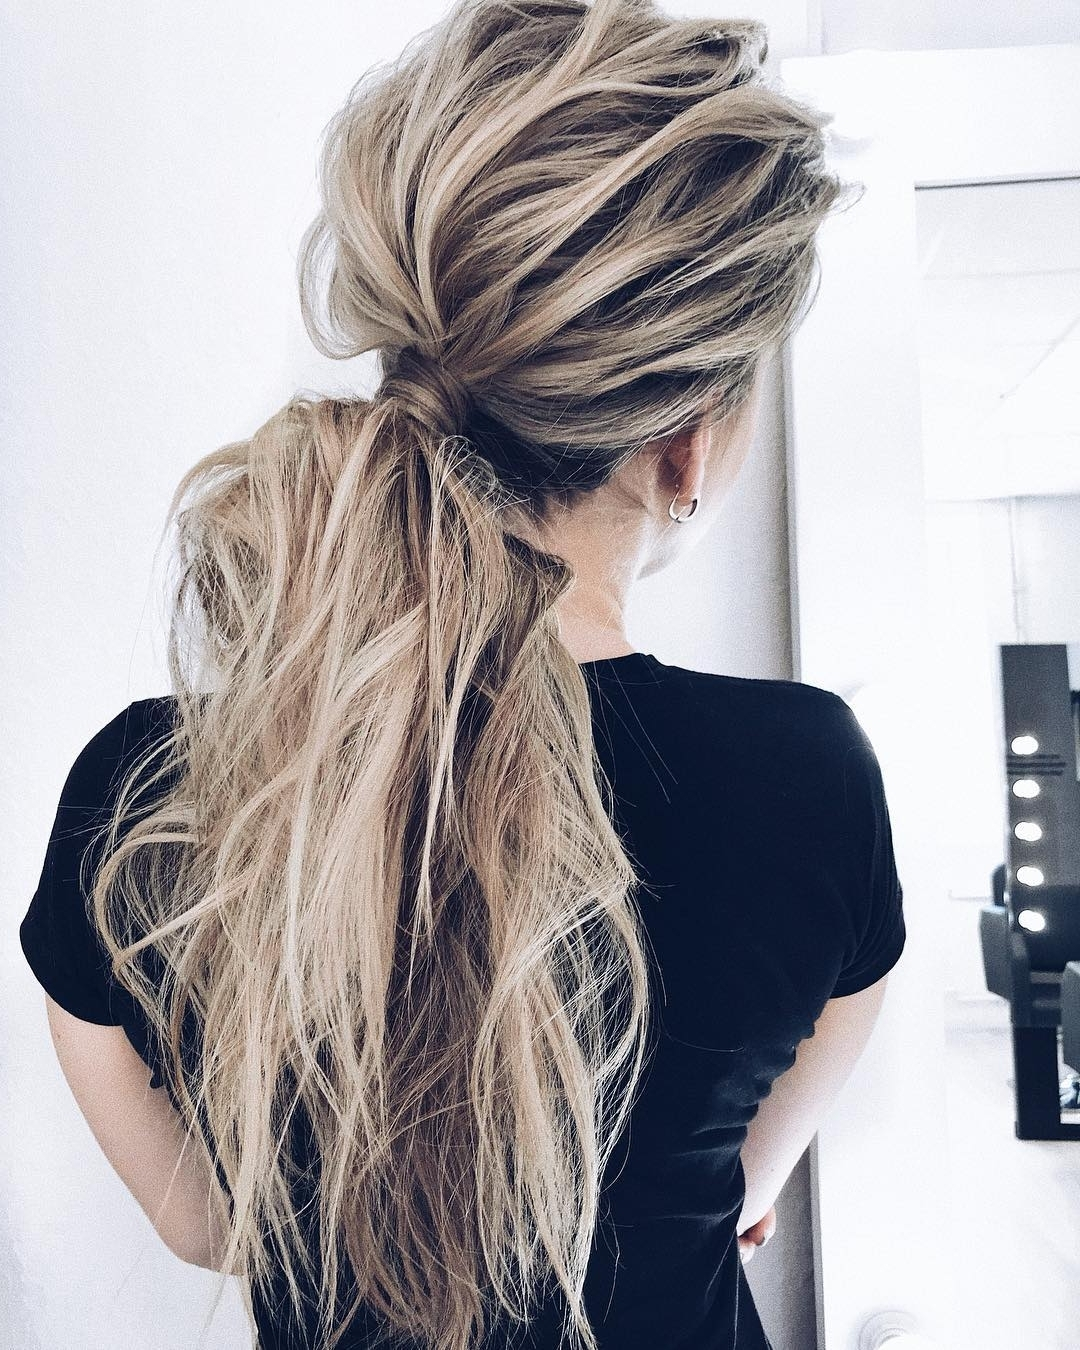 Fashionable Messy Ponytail Hairstyles With A Dutch Braid Inside 10 Creative Ponytail Hairstyles For Long Hair, Summer Hairstyle (View 7 of 20)